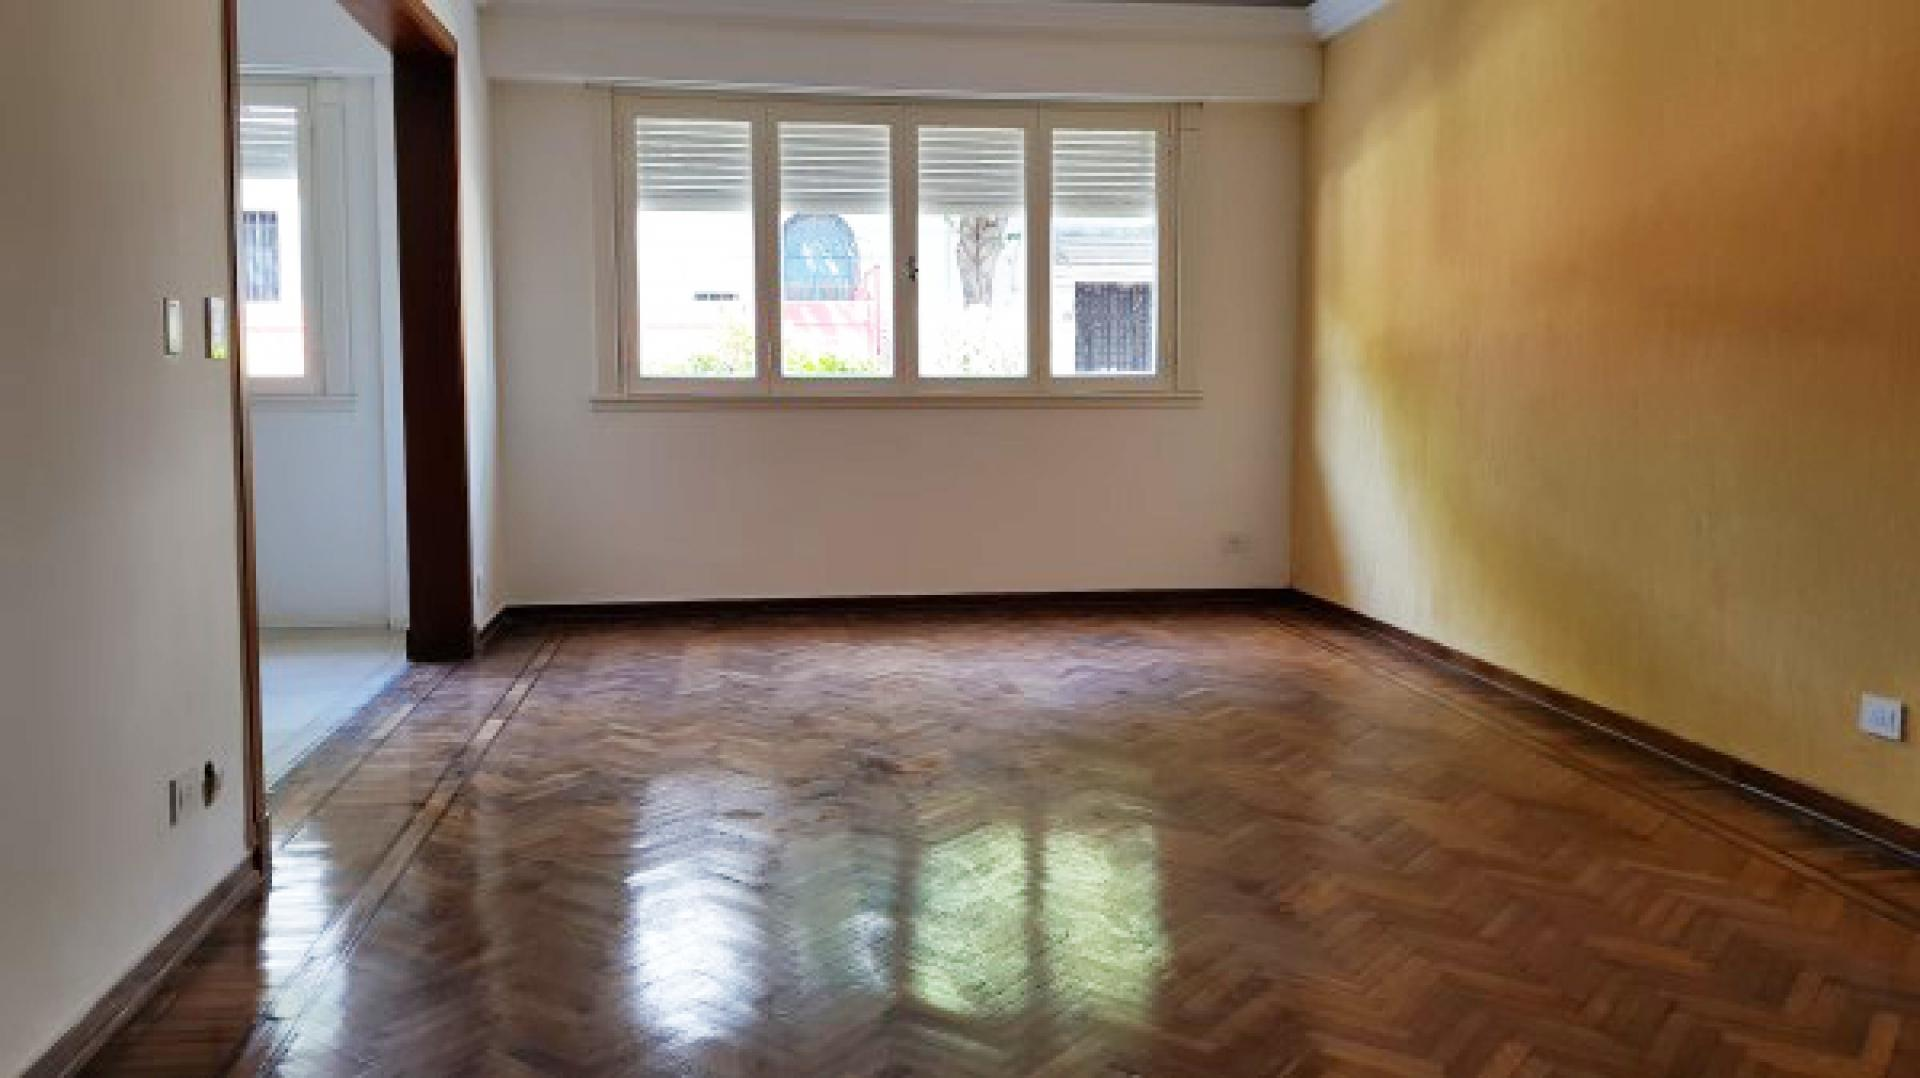 Venta Ph En Caballito Capital Federal 168683 Icasas Com Ar # Muebles Av Gaona